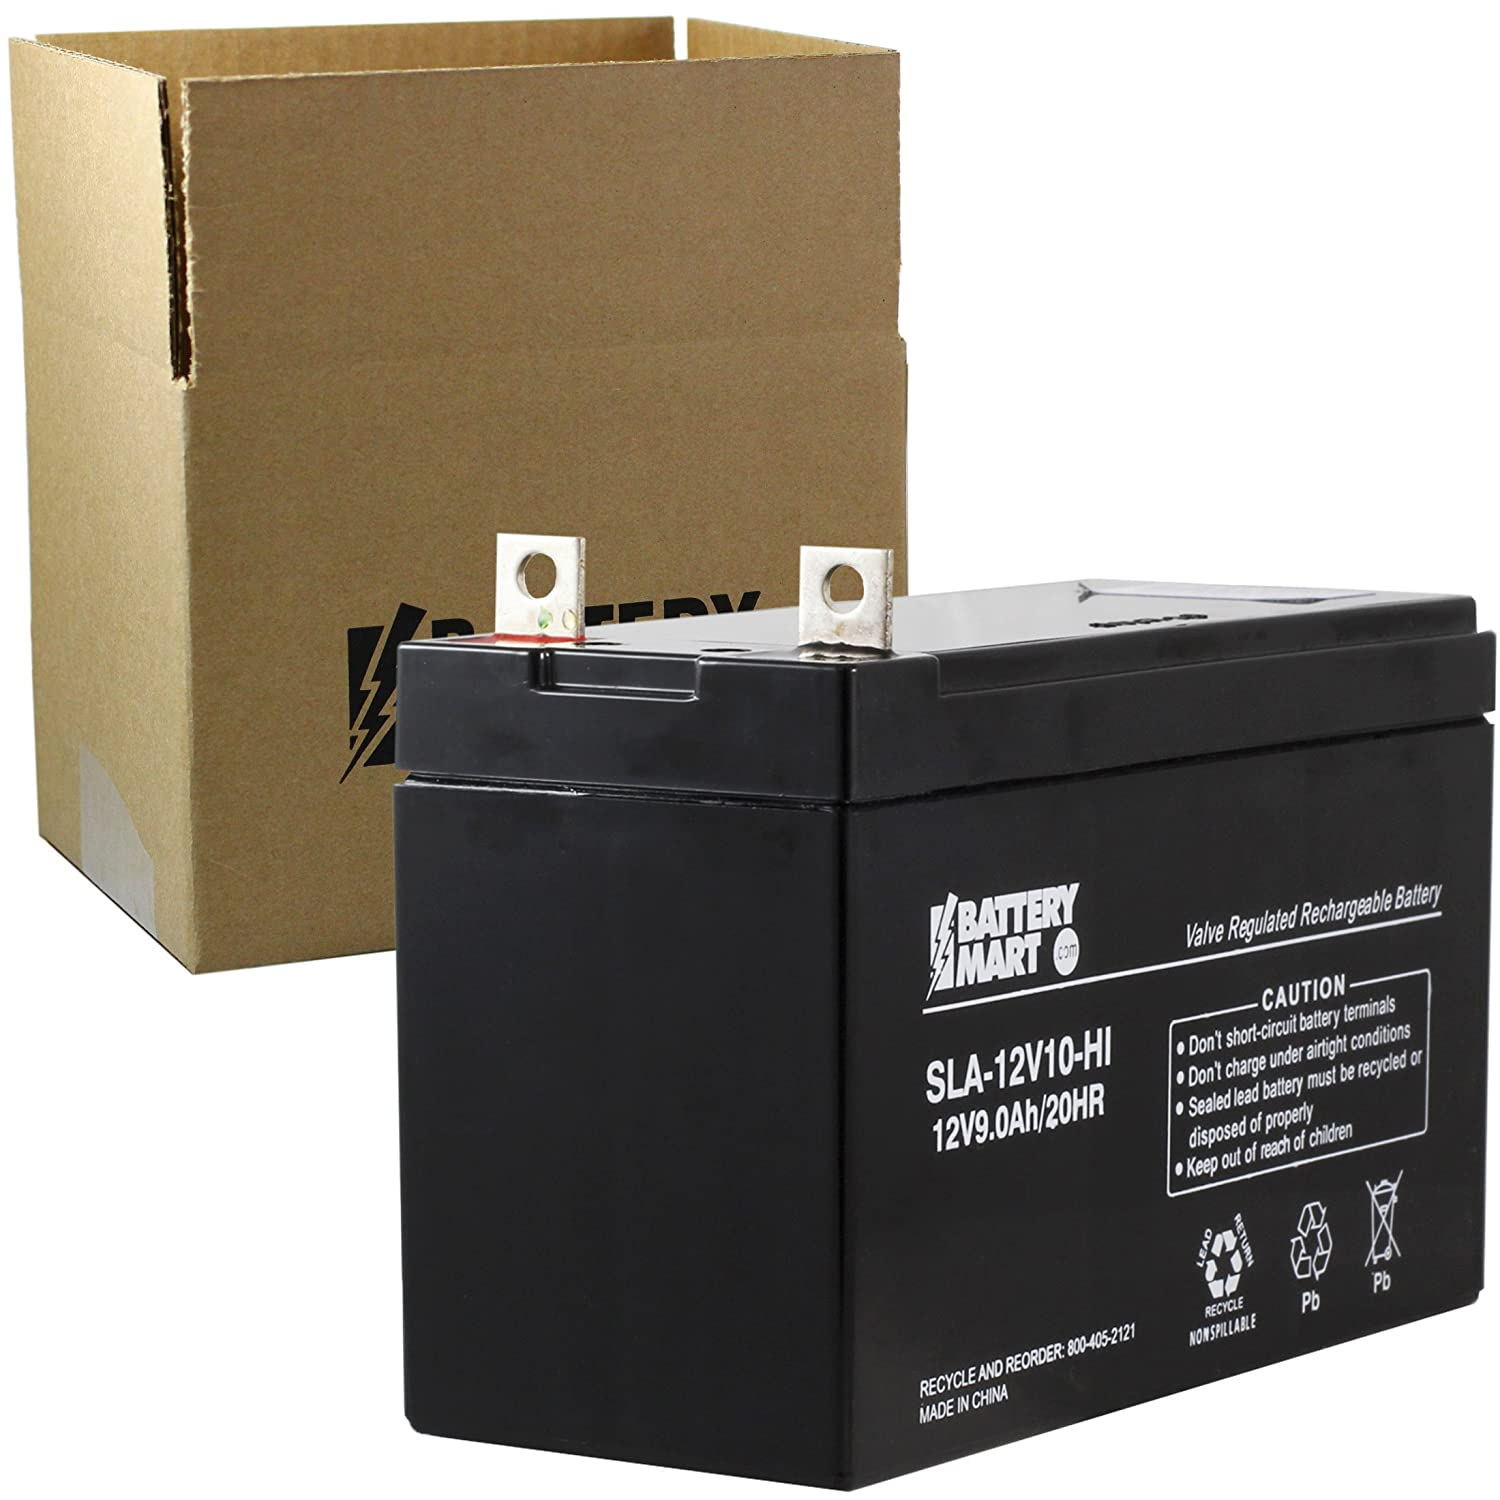 AB47700 Replacement 12 Volt 9 Ah Sealed Lead Acid Rechargeable Battery with B1 1//4 Nut and Bolt Terminals Replaces: PS-1290NB UPS12580 PS1290NB Generac 0G9449 Generator Battery and MORE! 6-FM-9